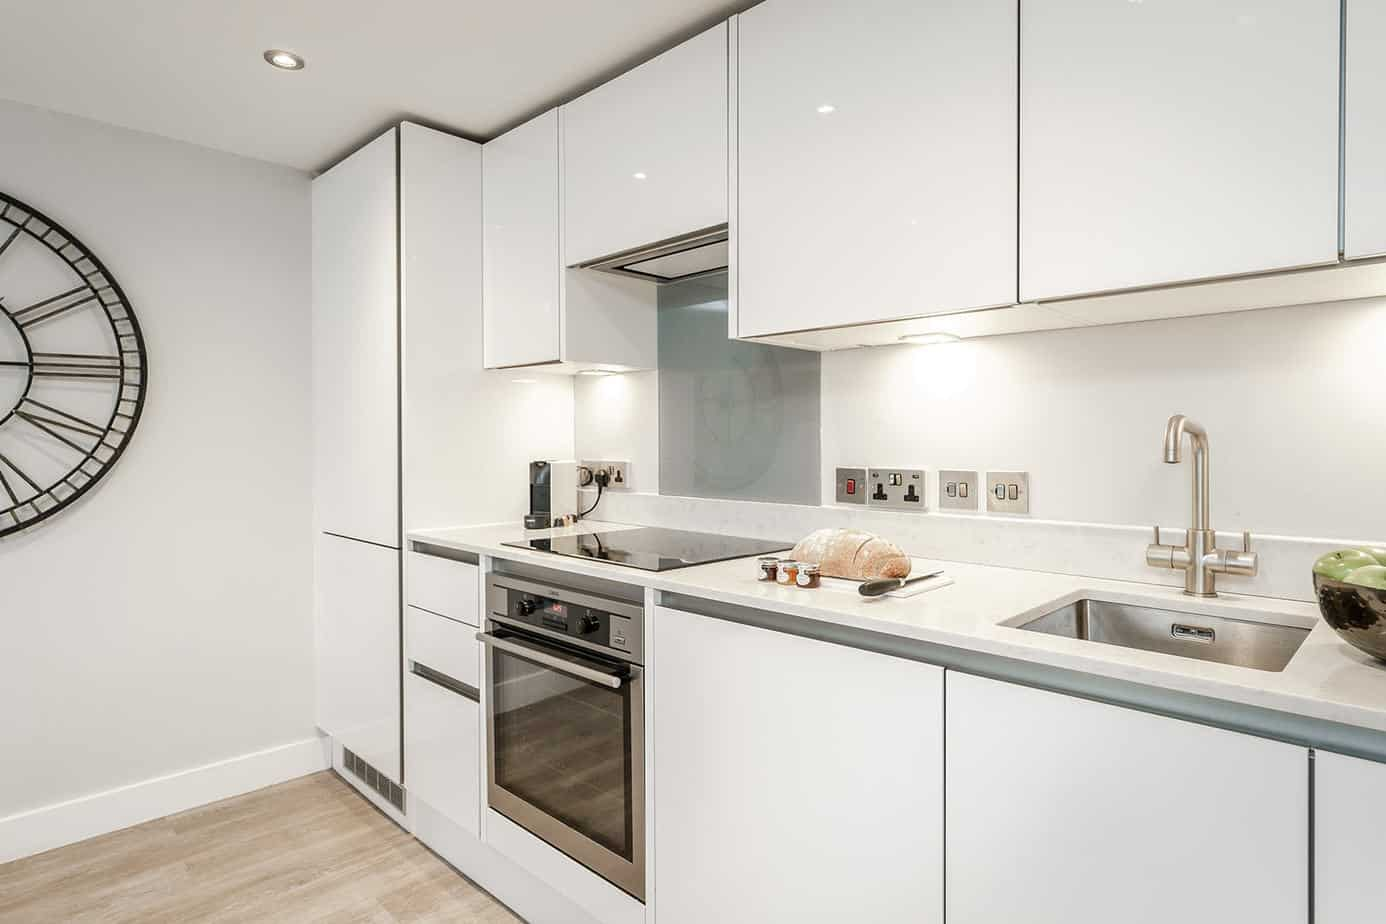 Tailored Stays Victoria Road Serviced Apartment provide a fully equip kitchen with all you need to rustle up a meal as good as if you were in your own home.